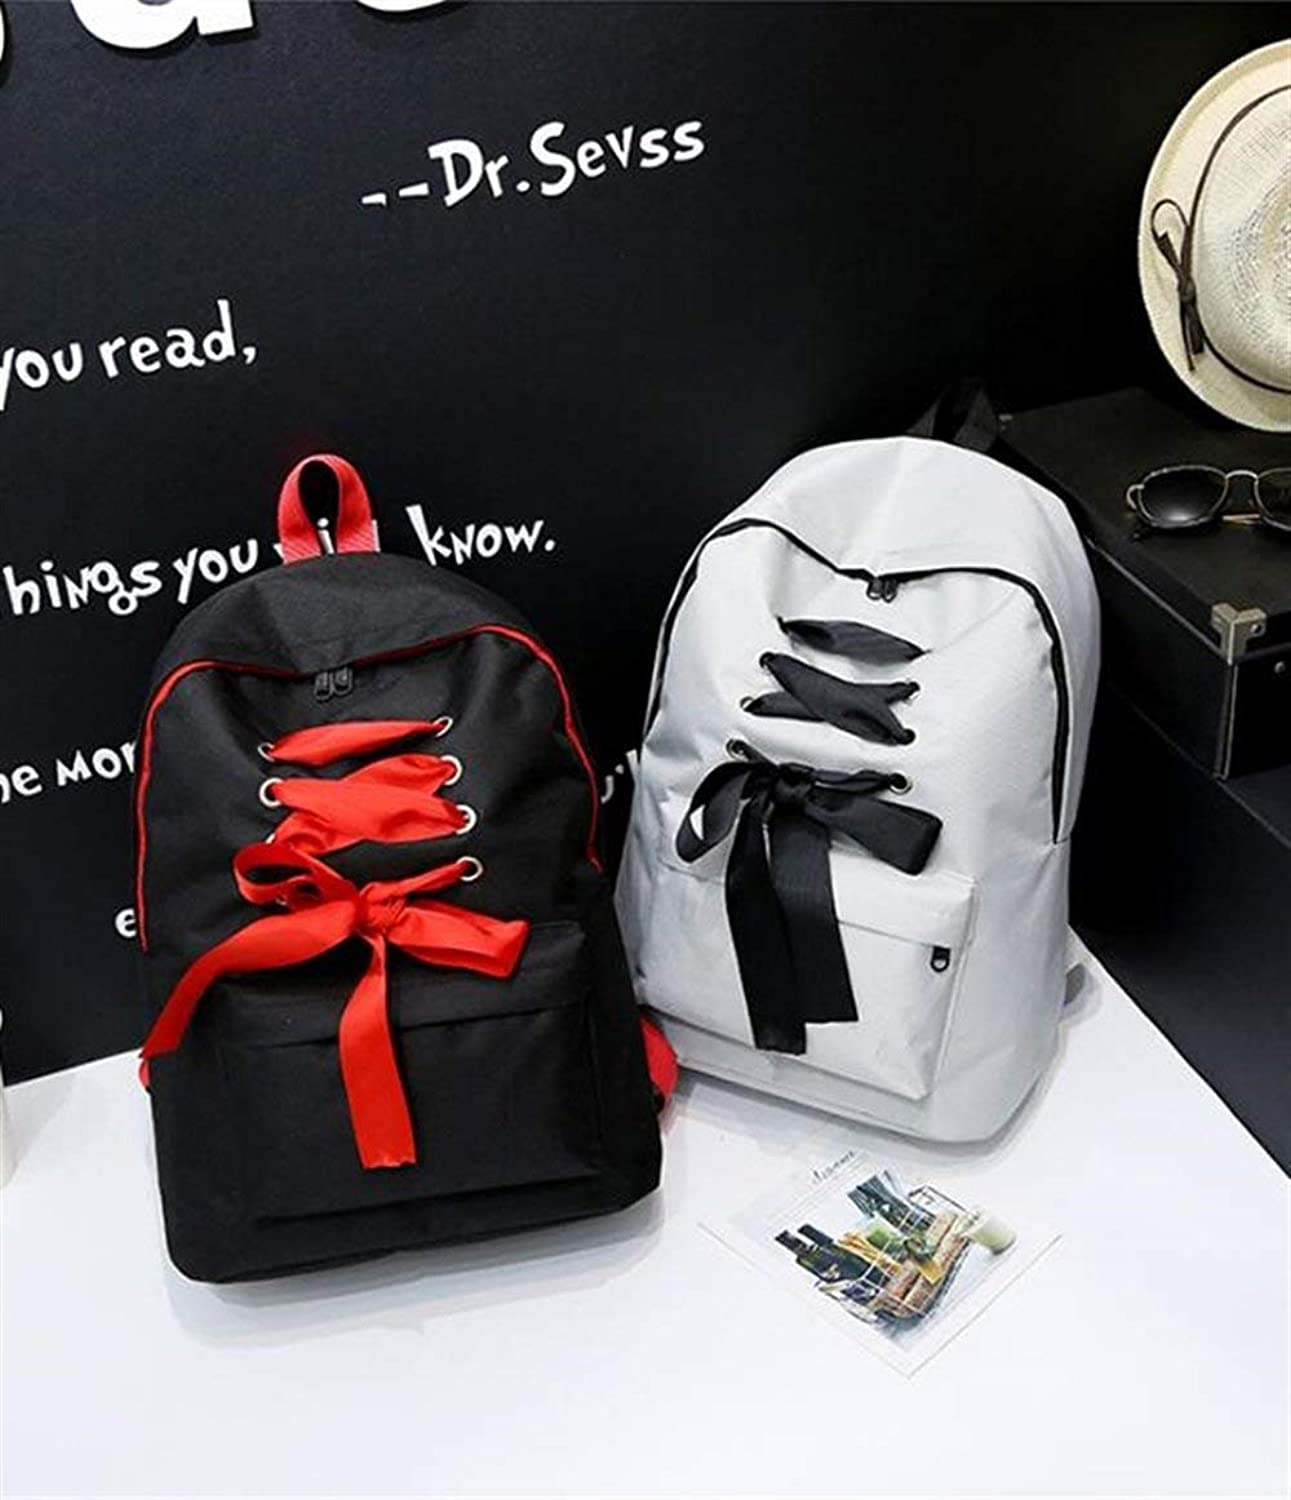 JINQD HOME Personality Backpacks HighCapacity Canvas Ribbon Backpack Student Zipper Schoolbag Leisure Backpack (color   White)